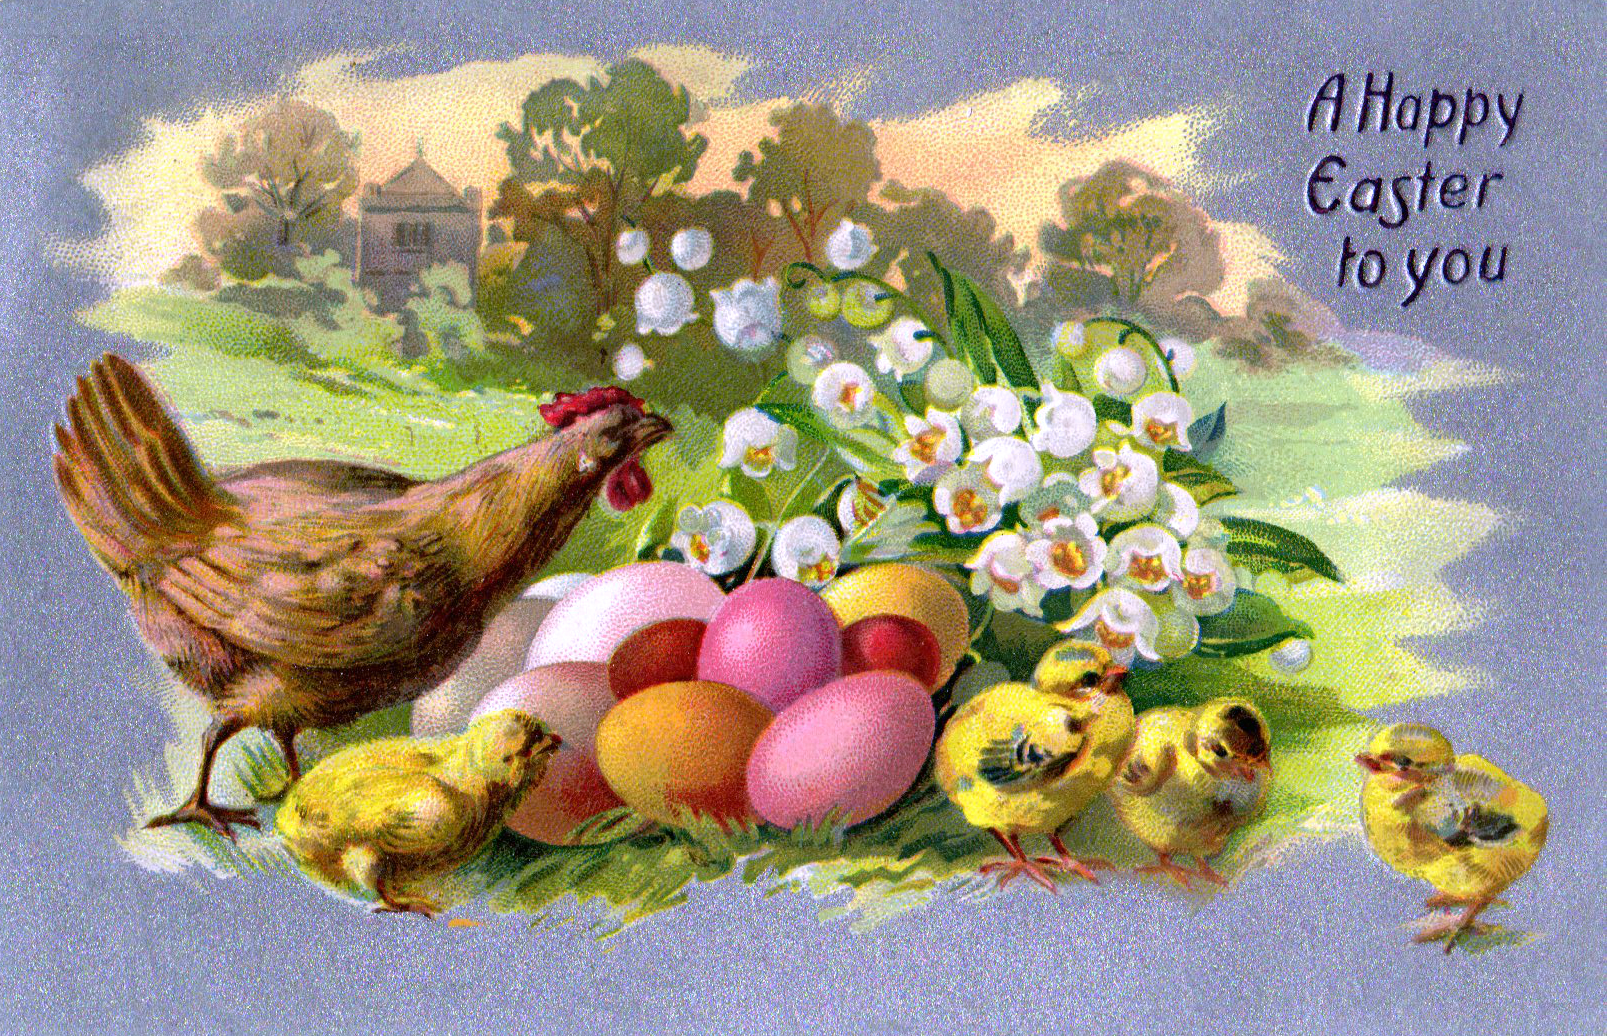 This is a free vintage illustration of a colorful Easter scene from an antique Easter postcard